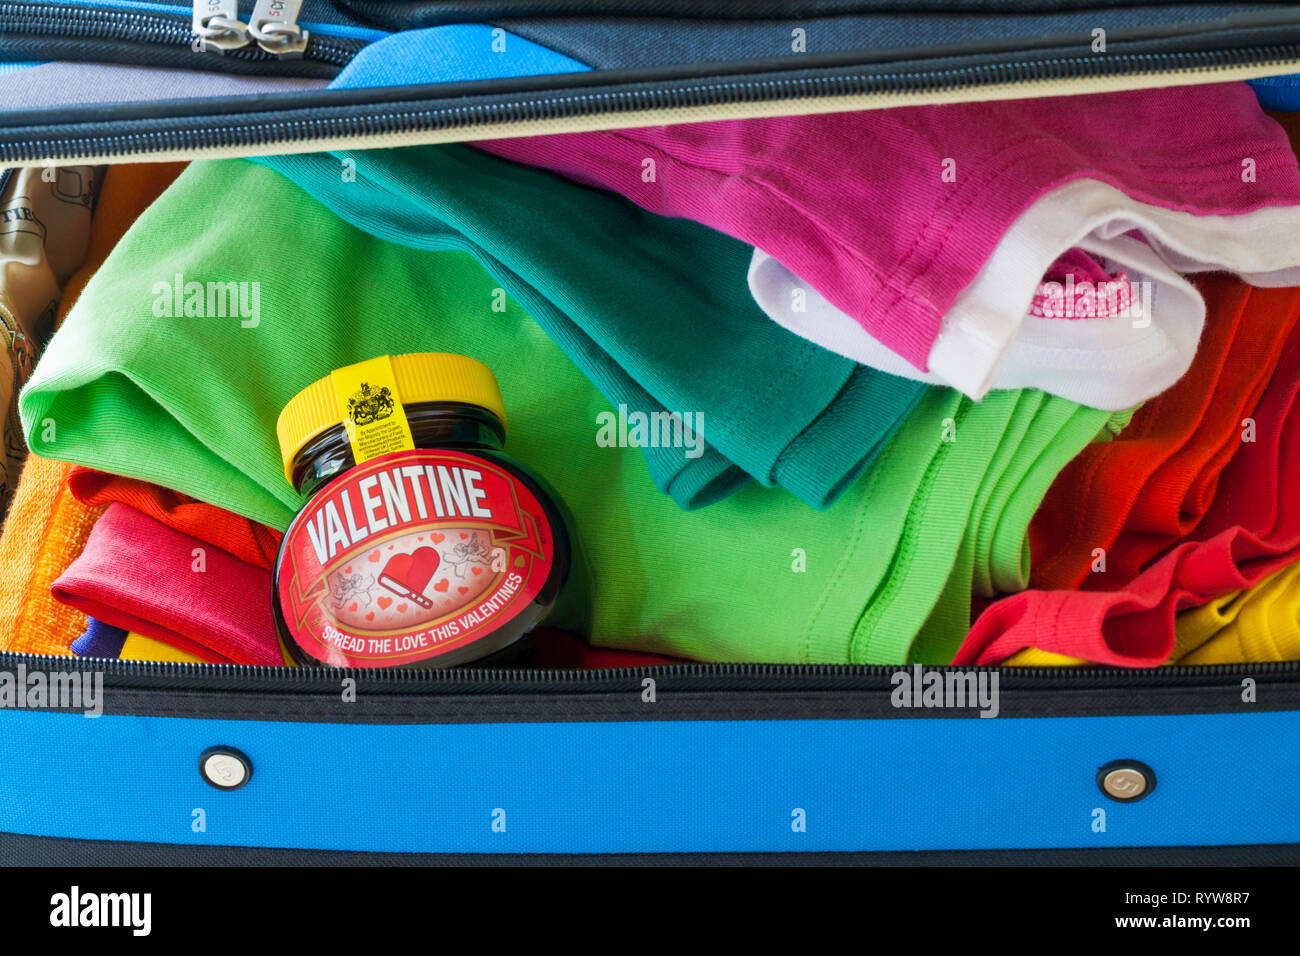 Special edition jar of Valentine Marmite by Unilever, spread the love this Valentines, packed in suitcase ready for holiday Stock Photo